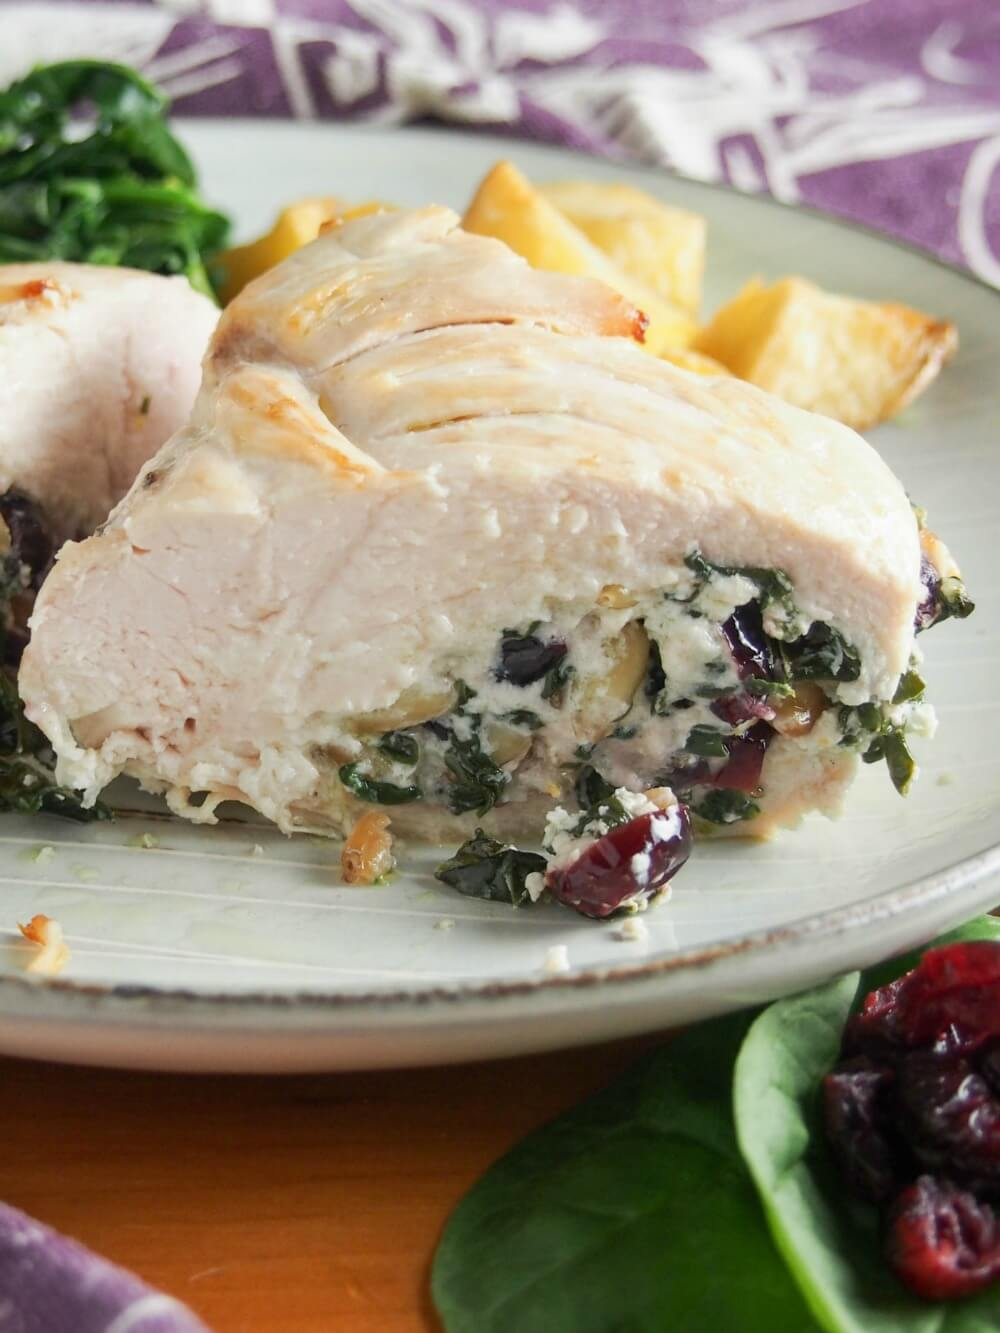 This goat cheese stuffed chicken with spinach and cranberries is deliciously comforting without being too heavy. It's fancy enough for a dinner party but quick enough for any night.